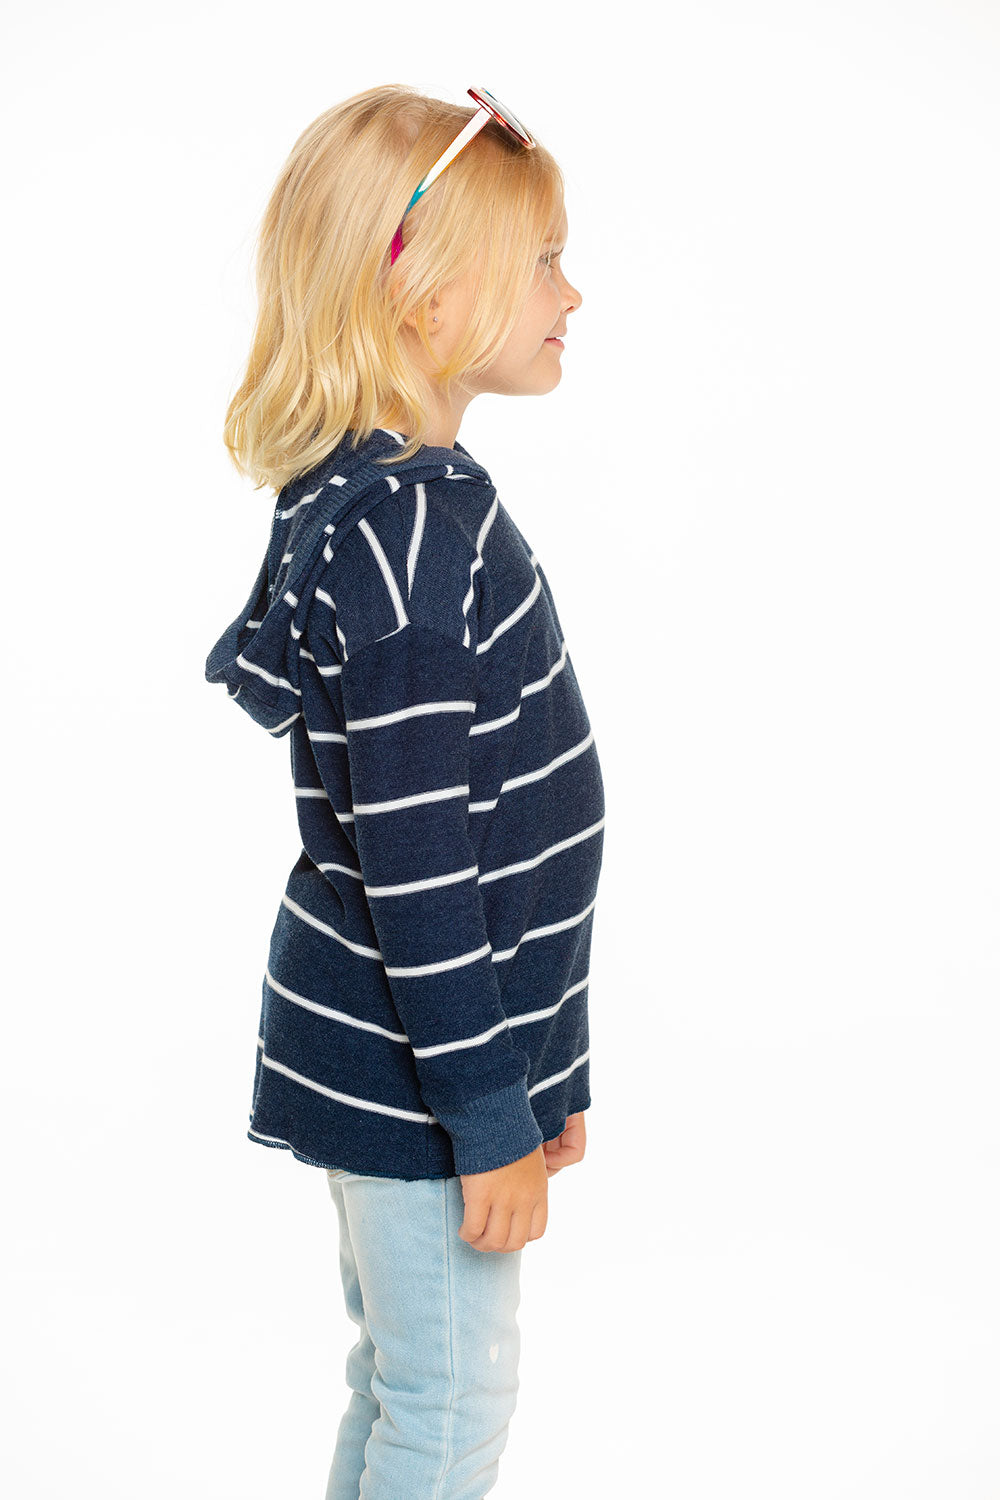 Cozy Knit Hi Lo Pullover Hoodie in Stripe GIRLS chaserbrand4.myshopify.com